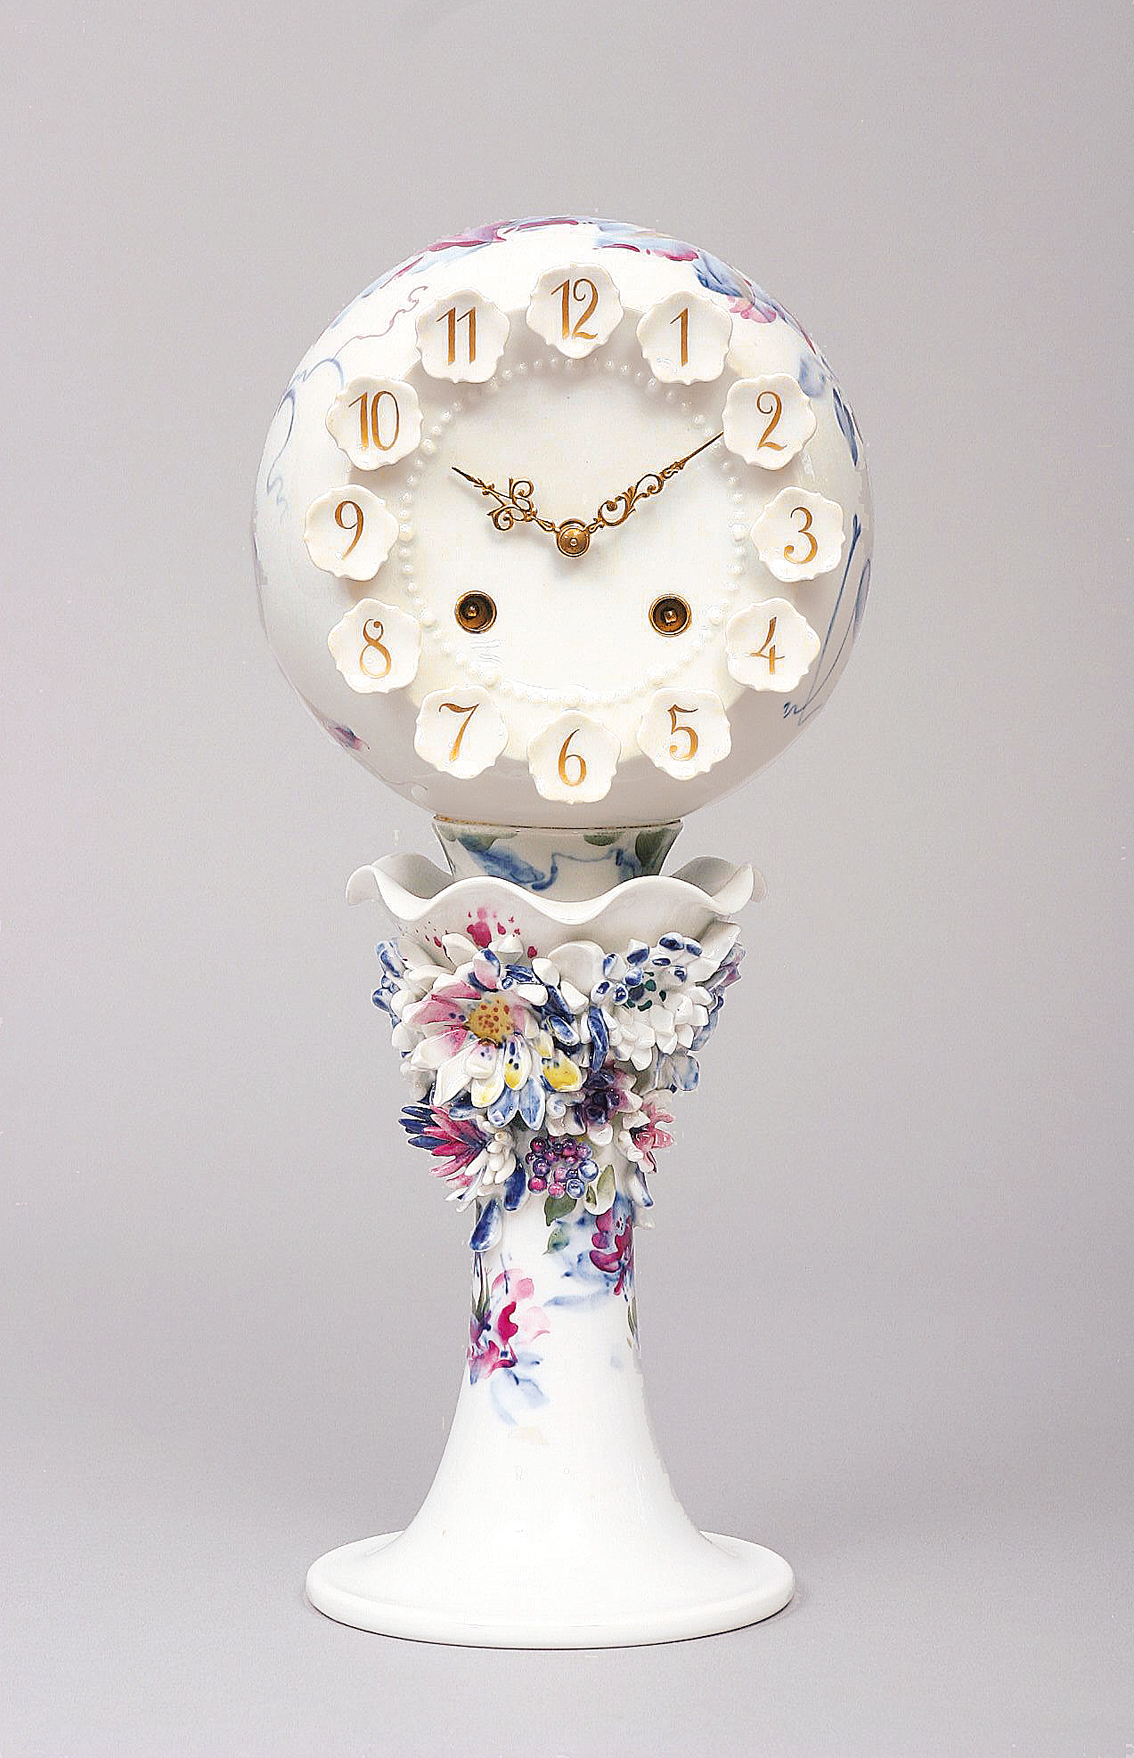 A rare modern model of a clock with floral decoration